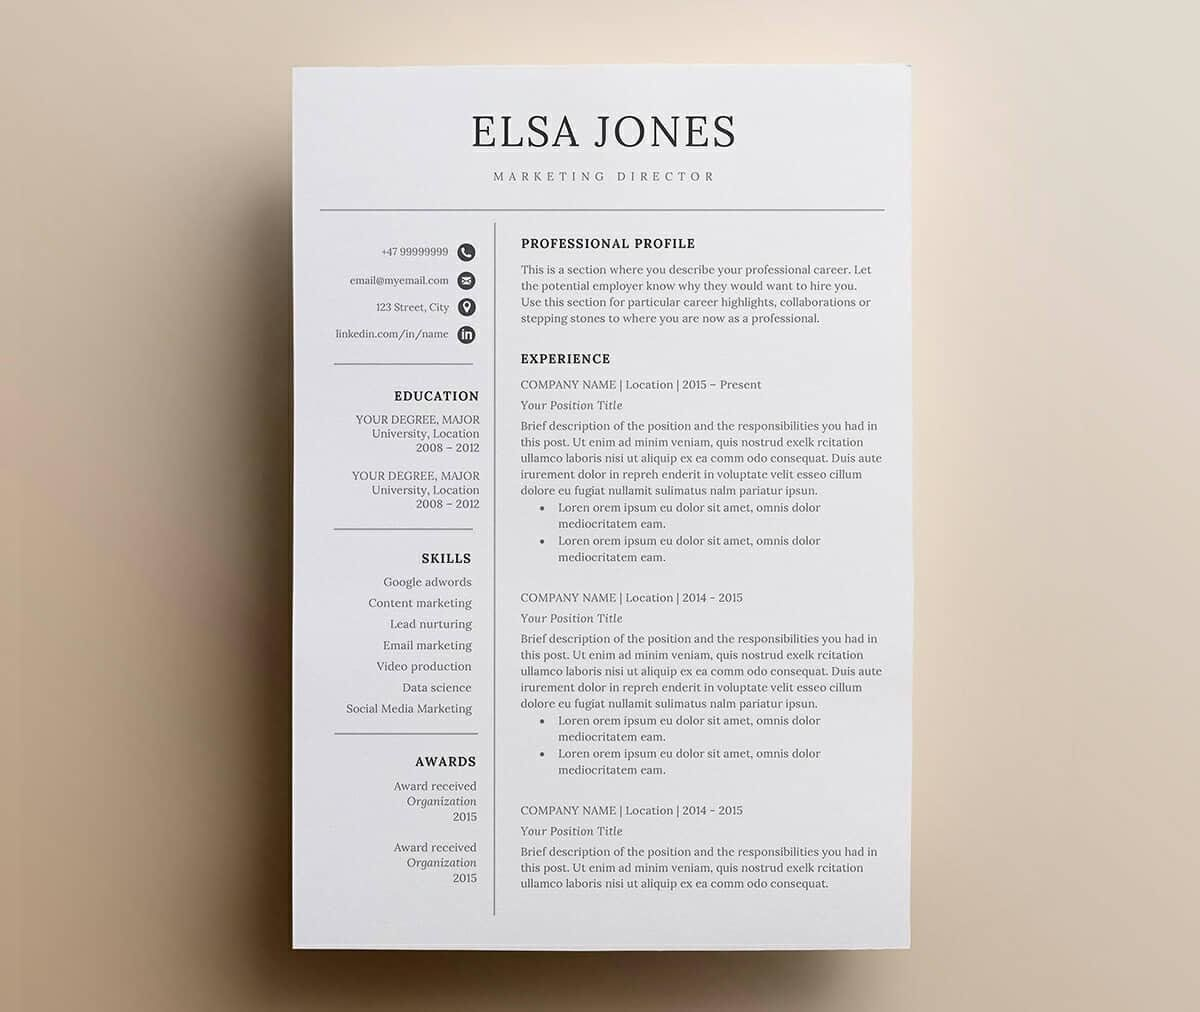 Clean Basic Resume Example With Elegant Font Resumes